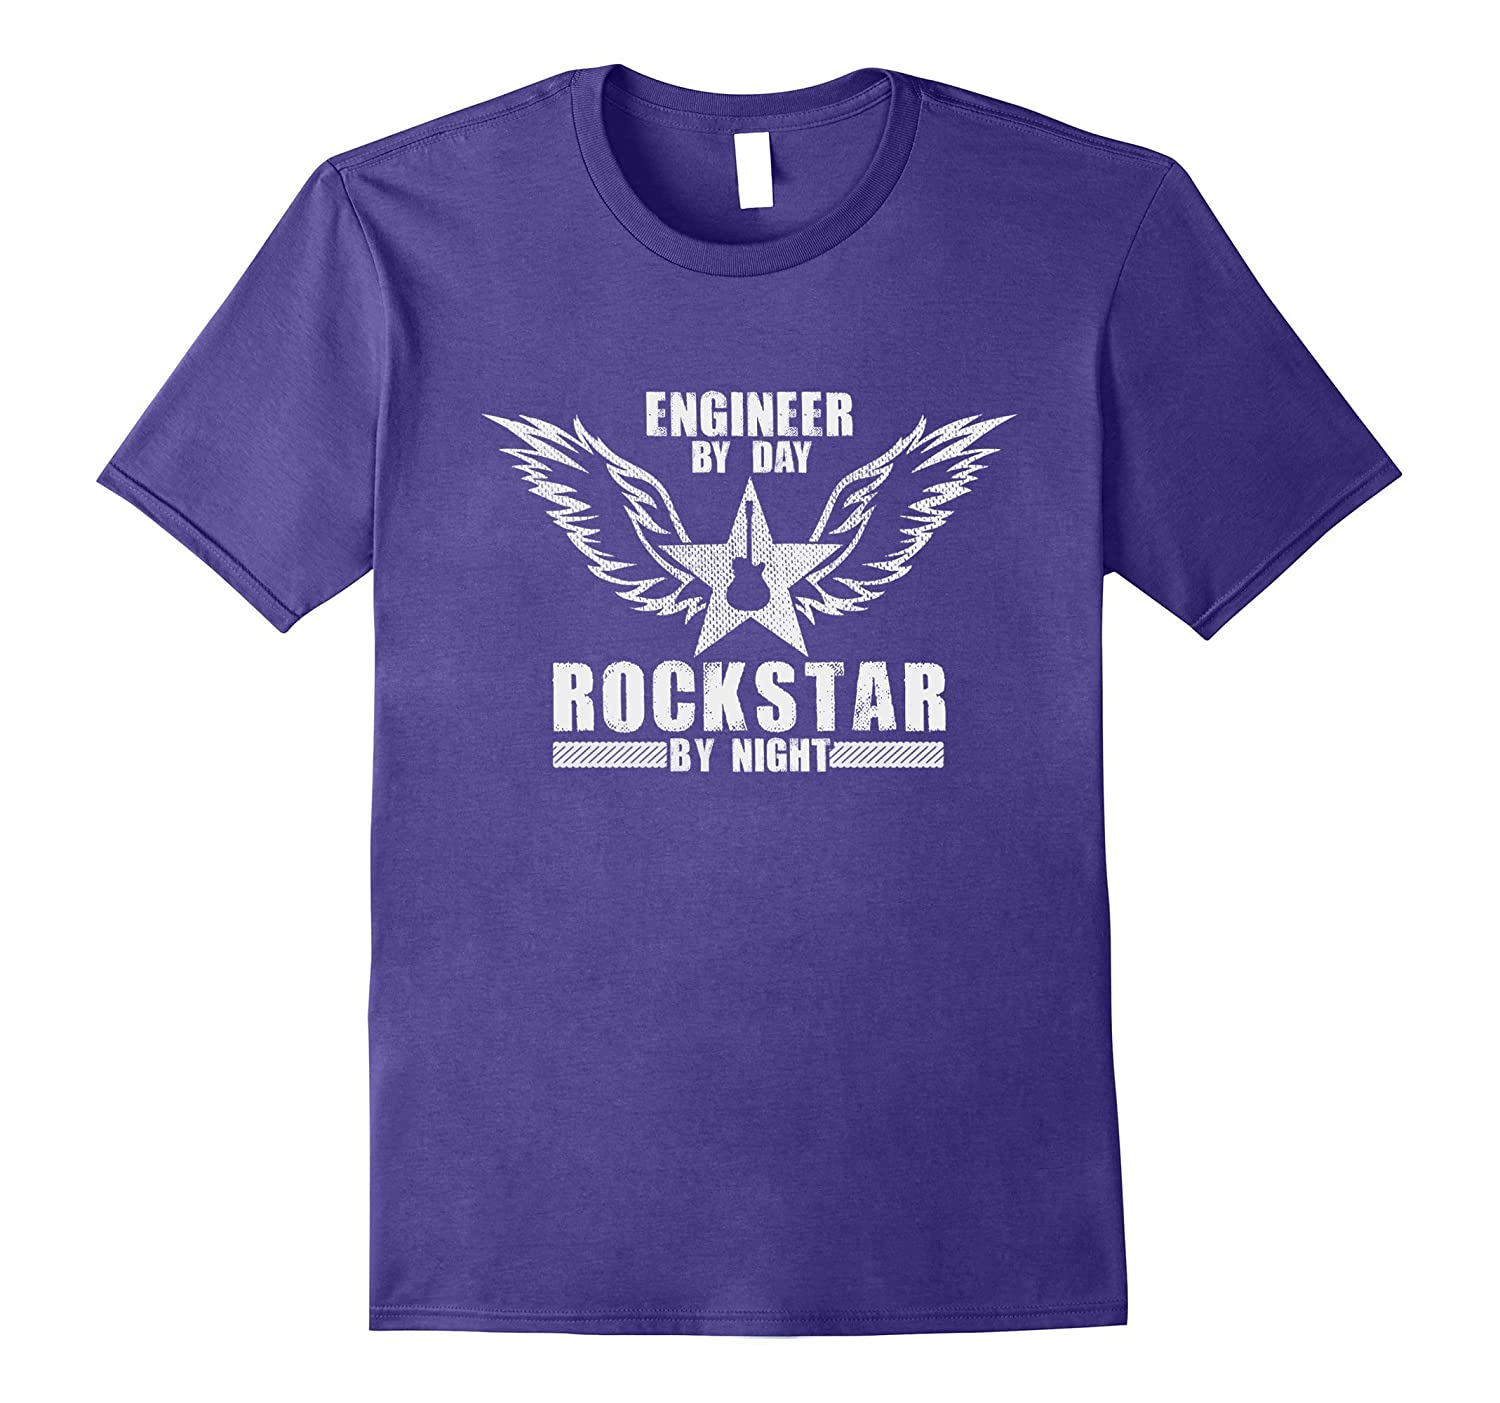 The Official Engineer by Day  Rockstar by Night T-Shirt-Vaci